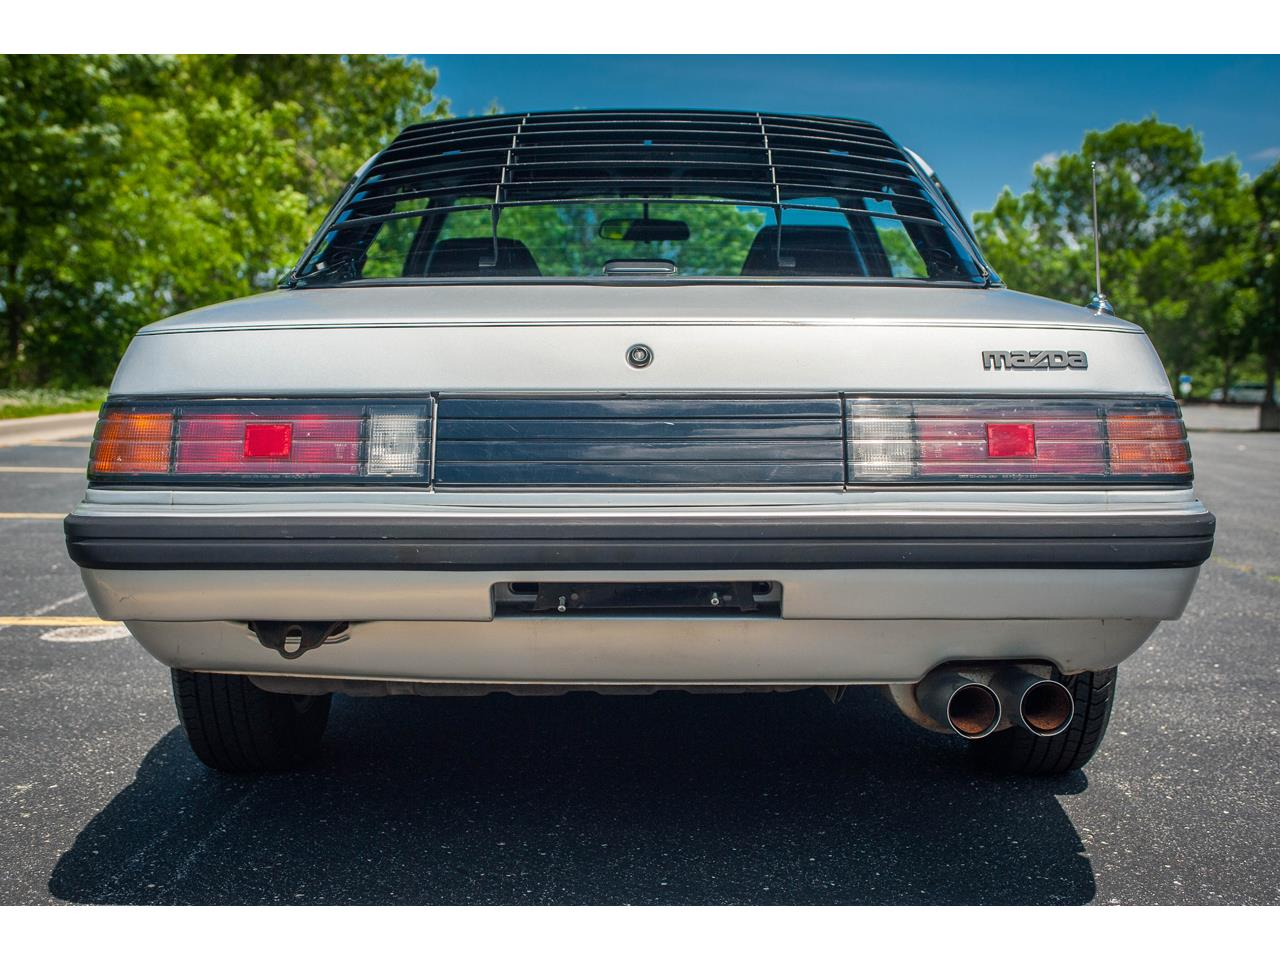 Large Picture of 1982 RX-7 located in O'Fallon Illinois - $14,500.00 Offered by Gateway Classic Cars - St. Louis - QB9V